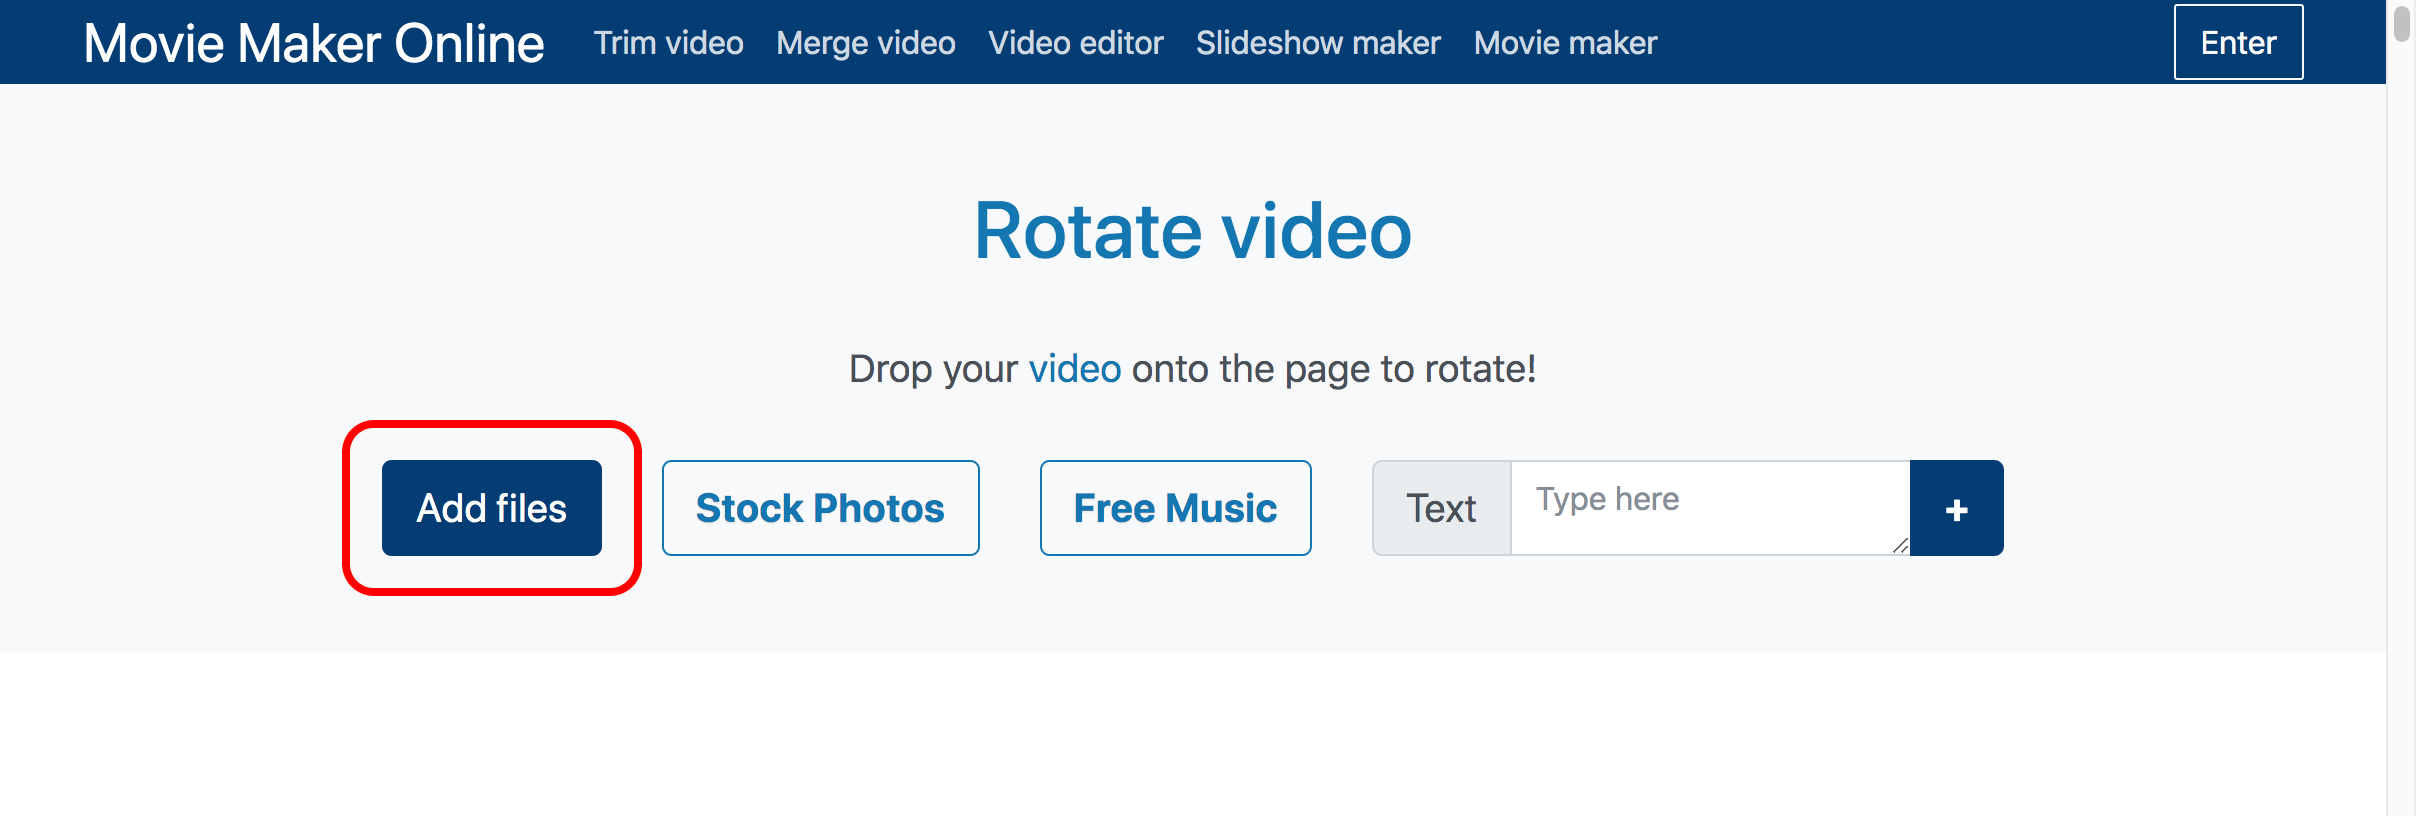 Add a video to rotate